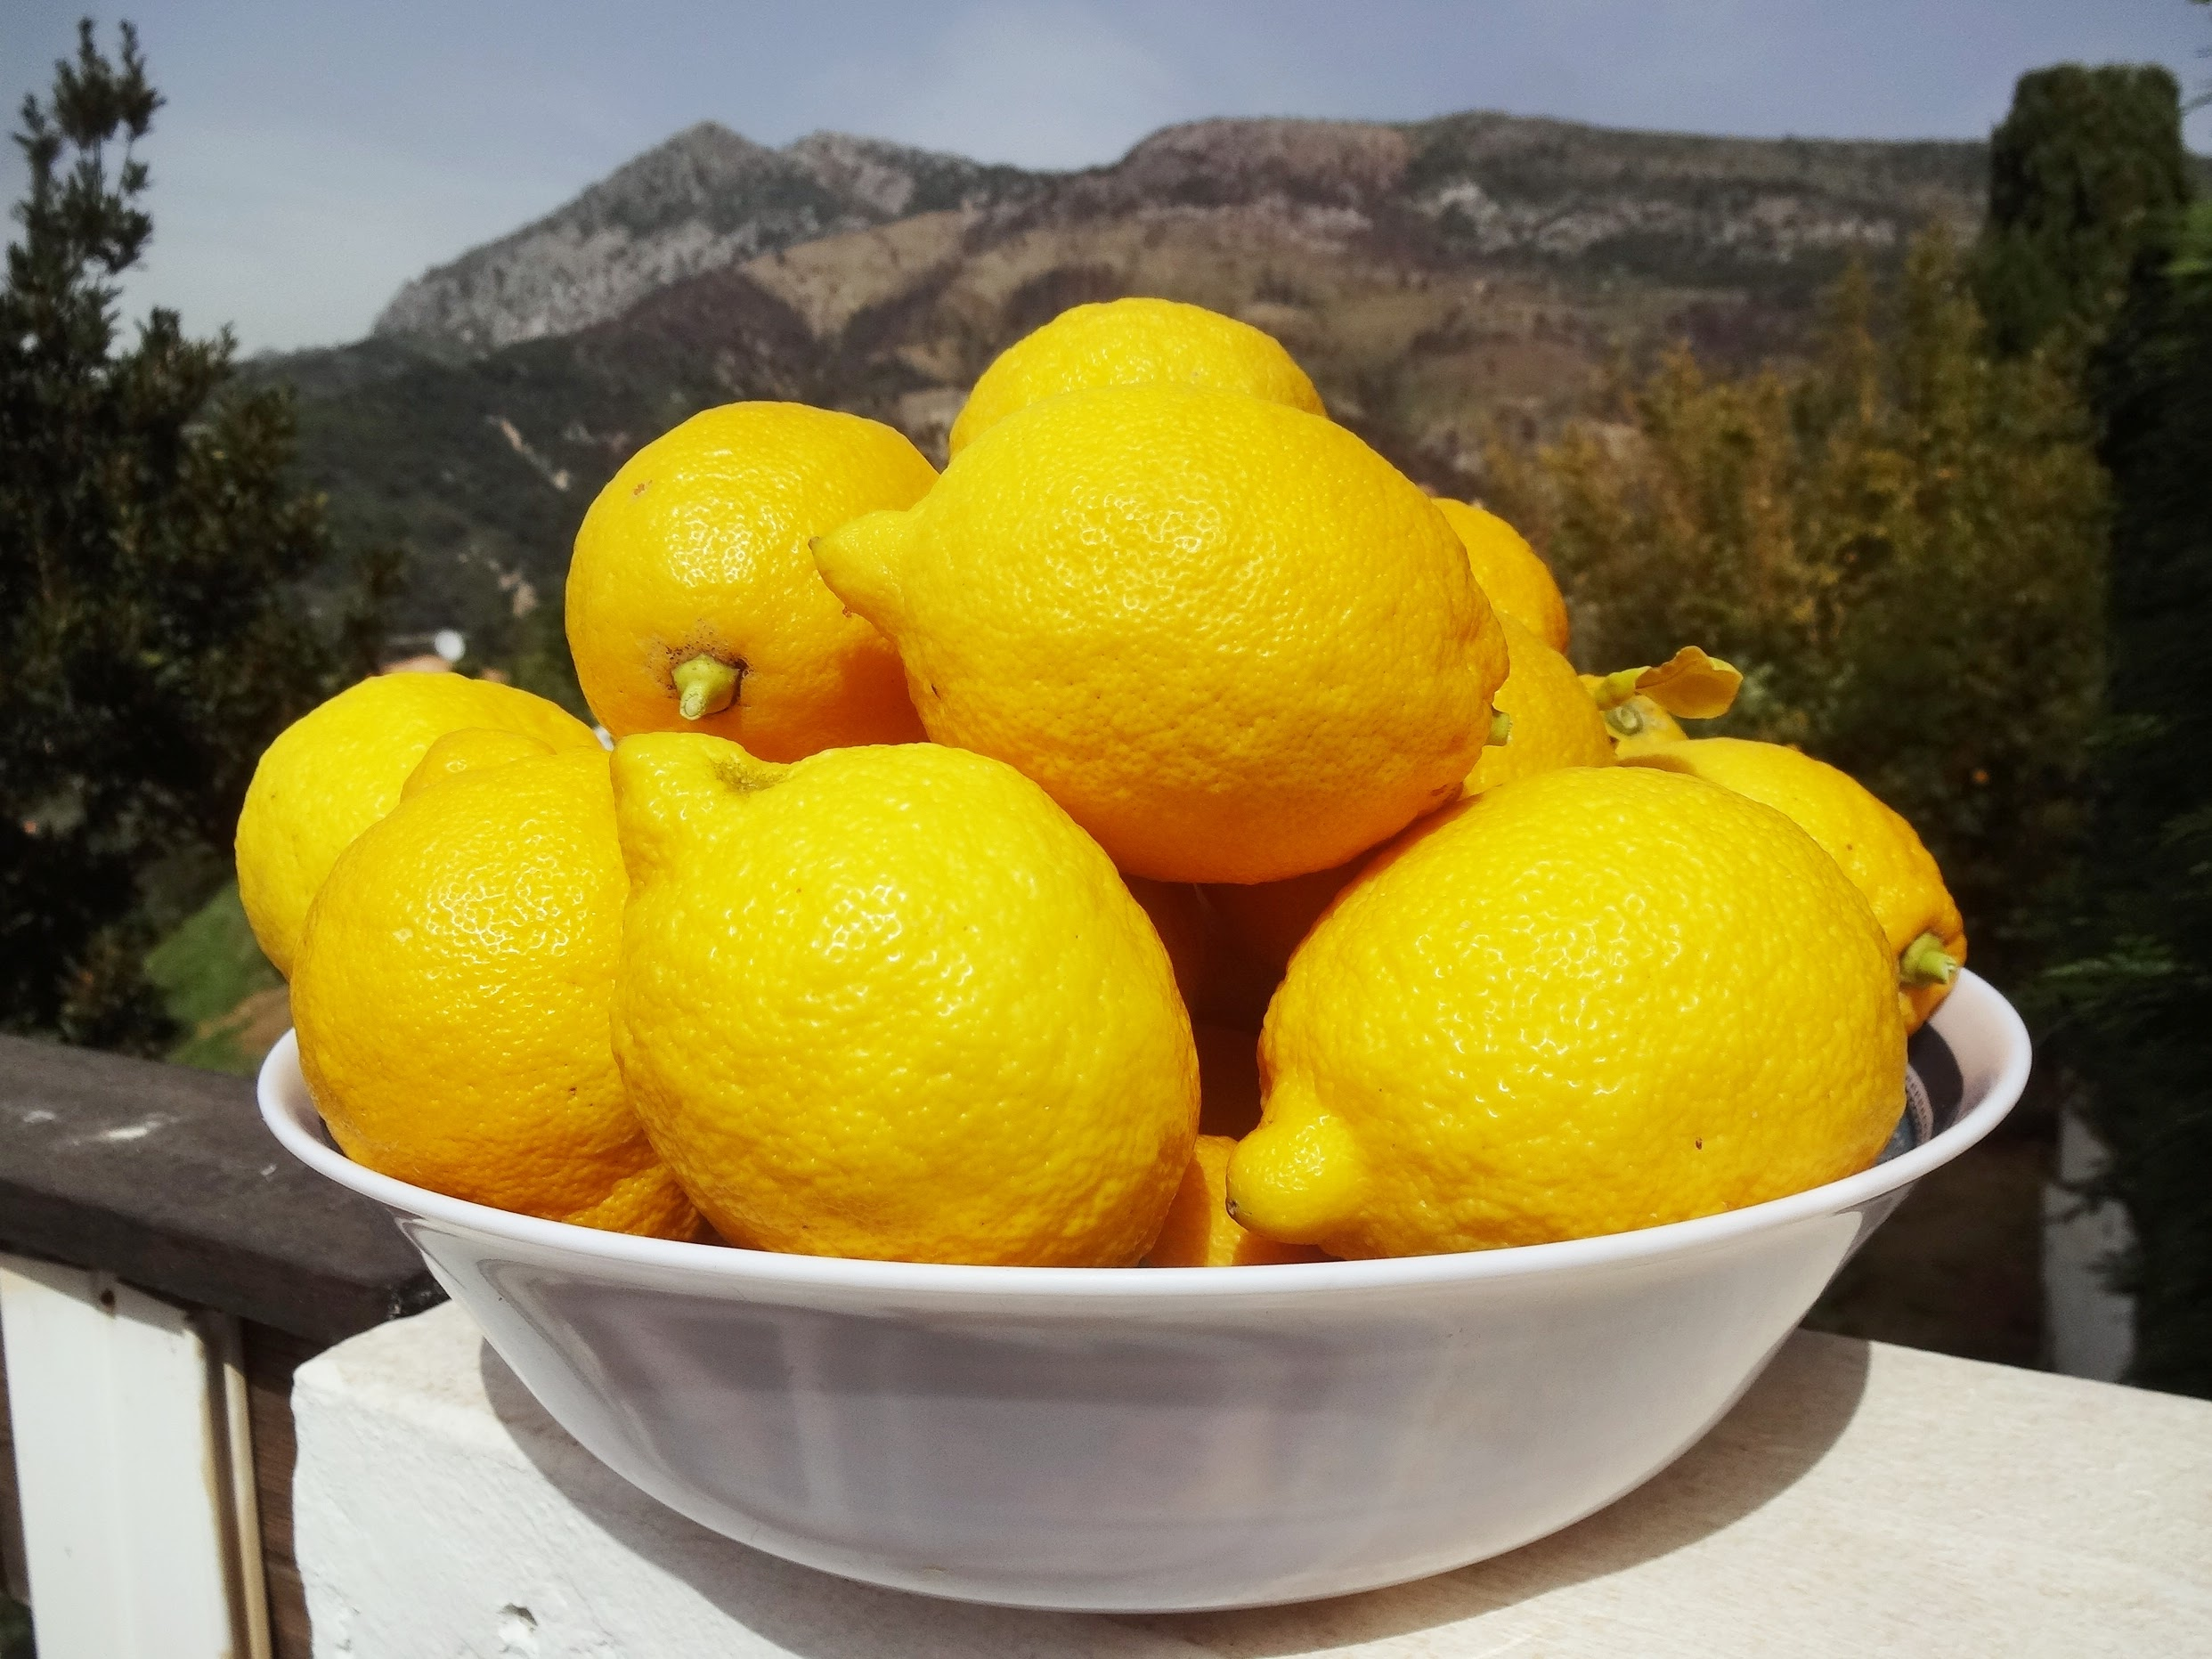 Lemons from our garden